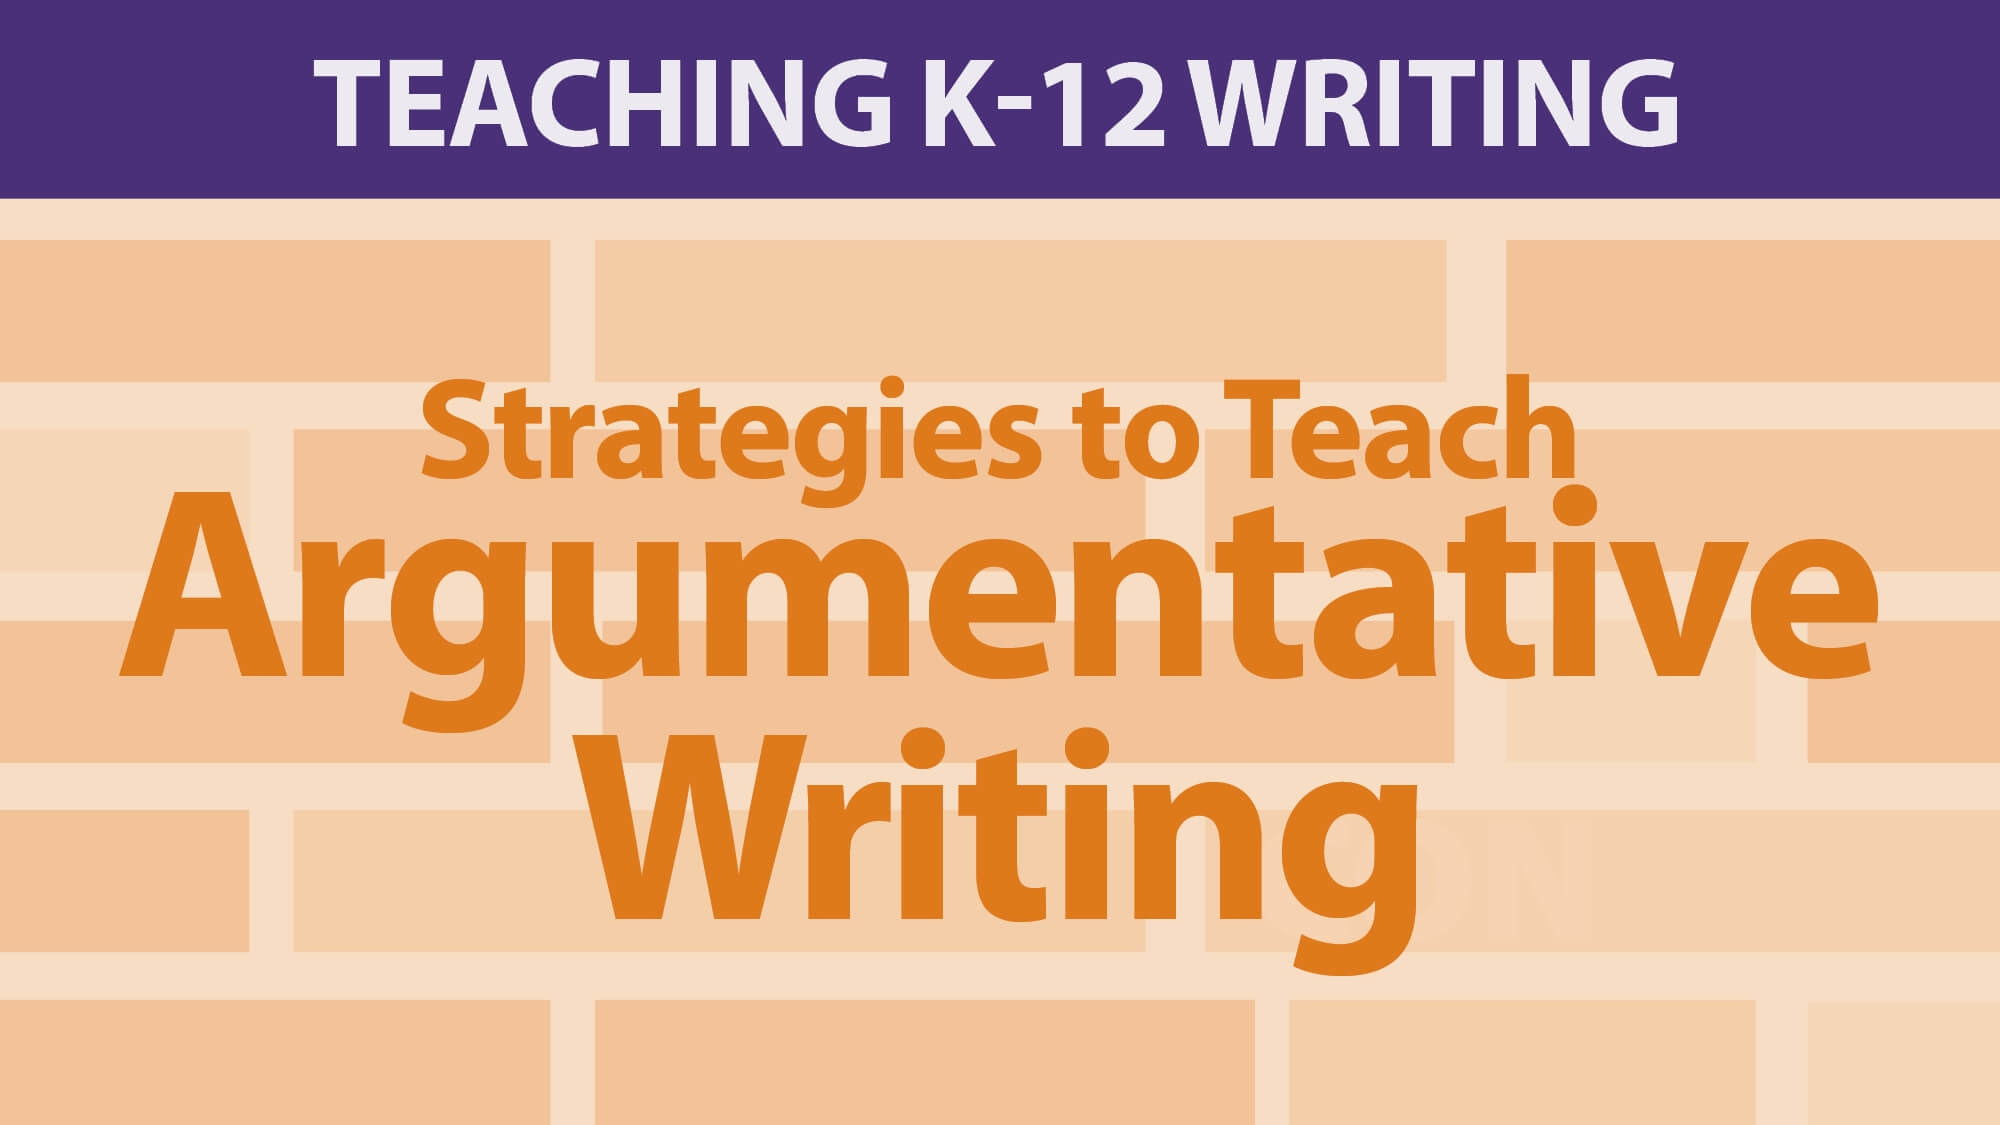 Six Traits of Writing: Implementation Strategies Online Course with webAcademy by Smekens Education